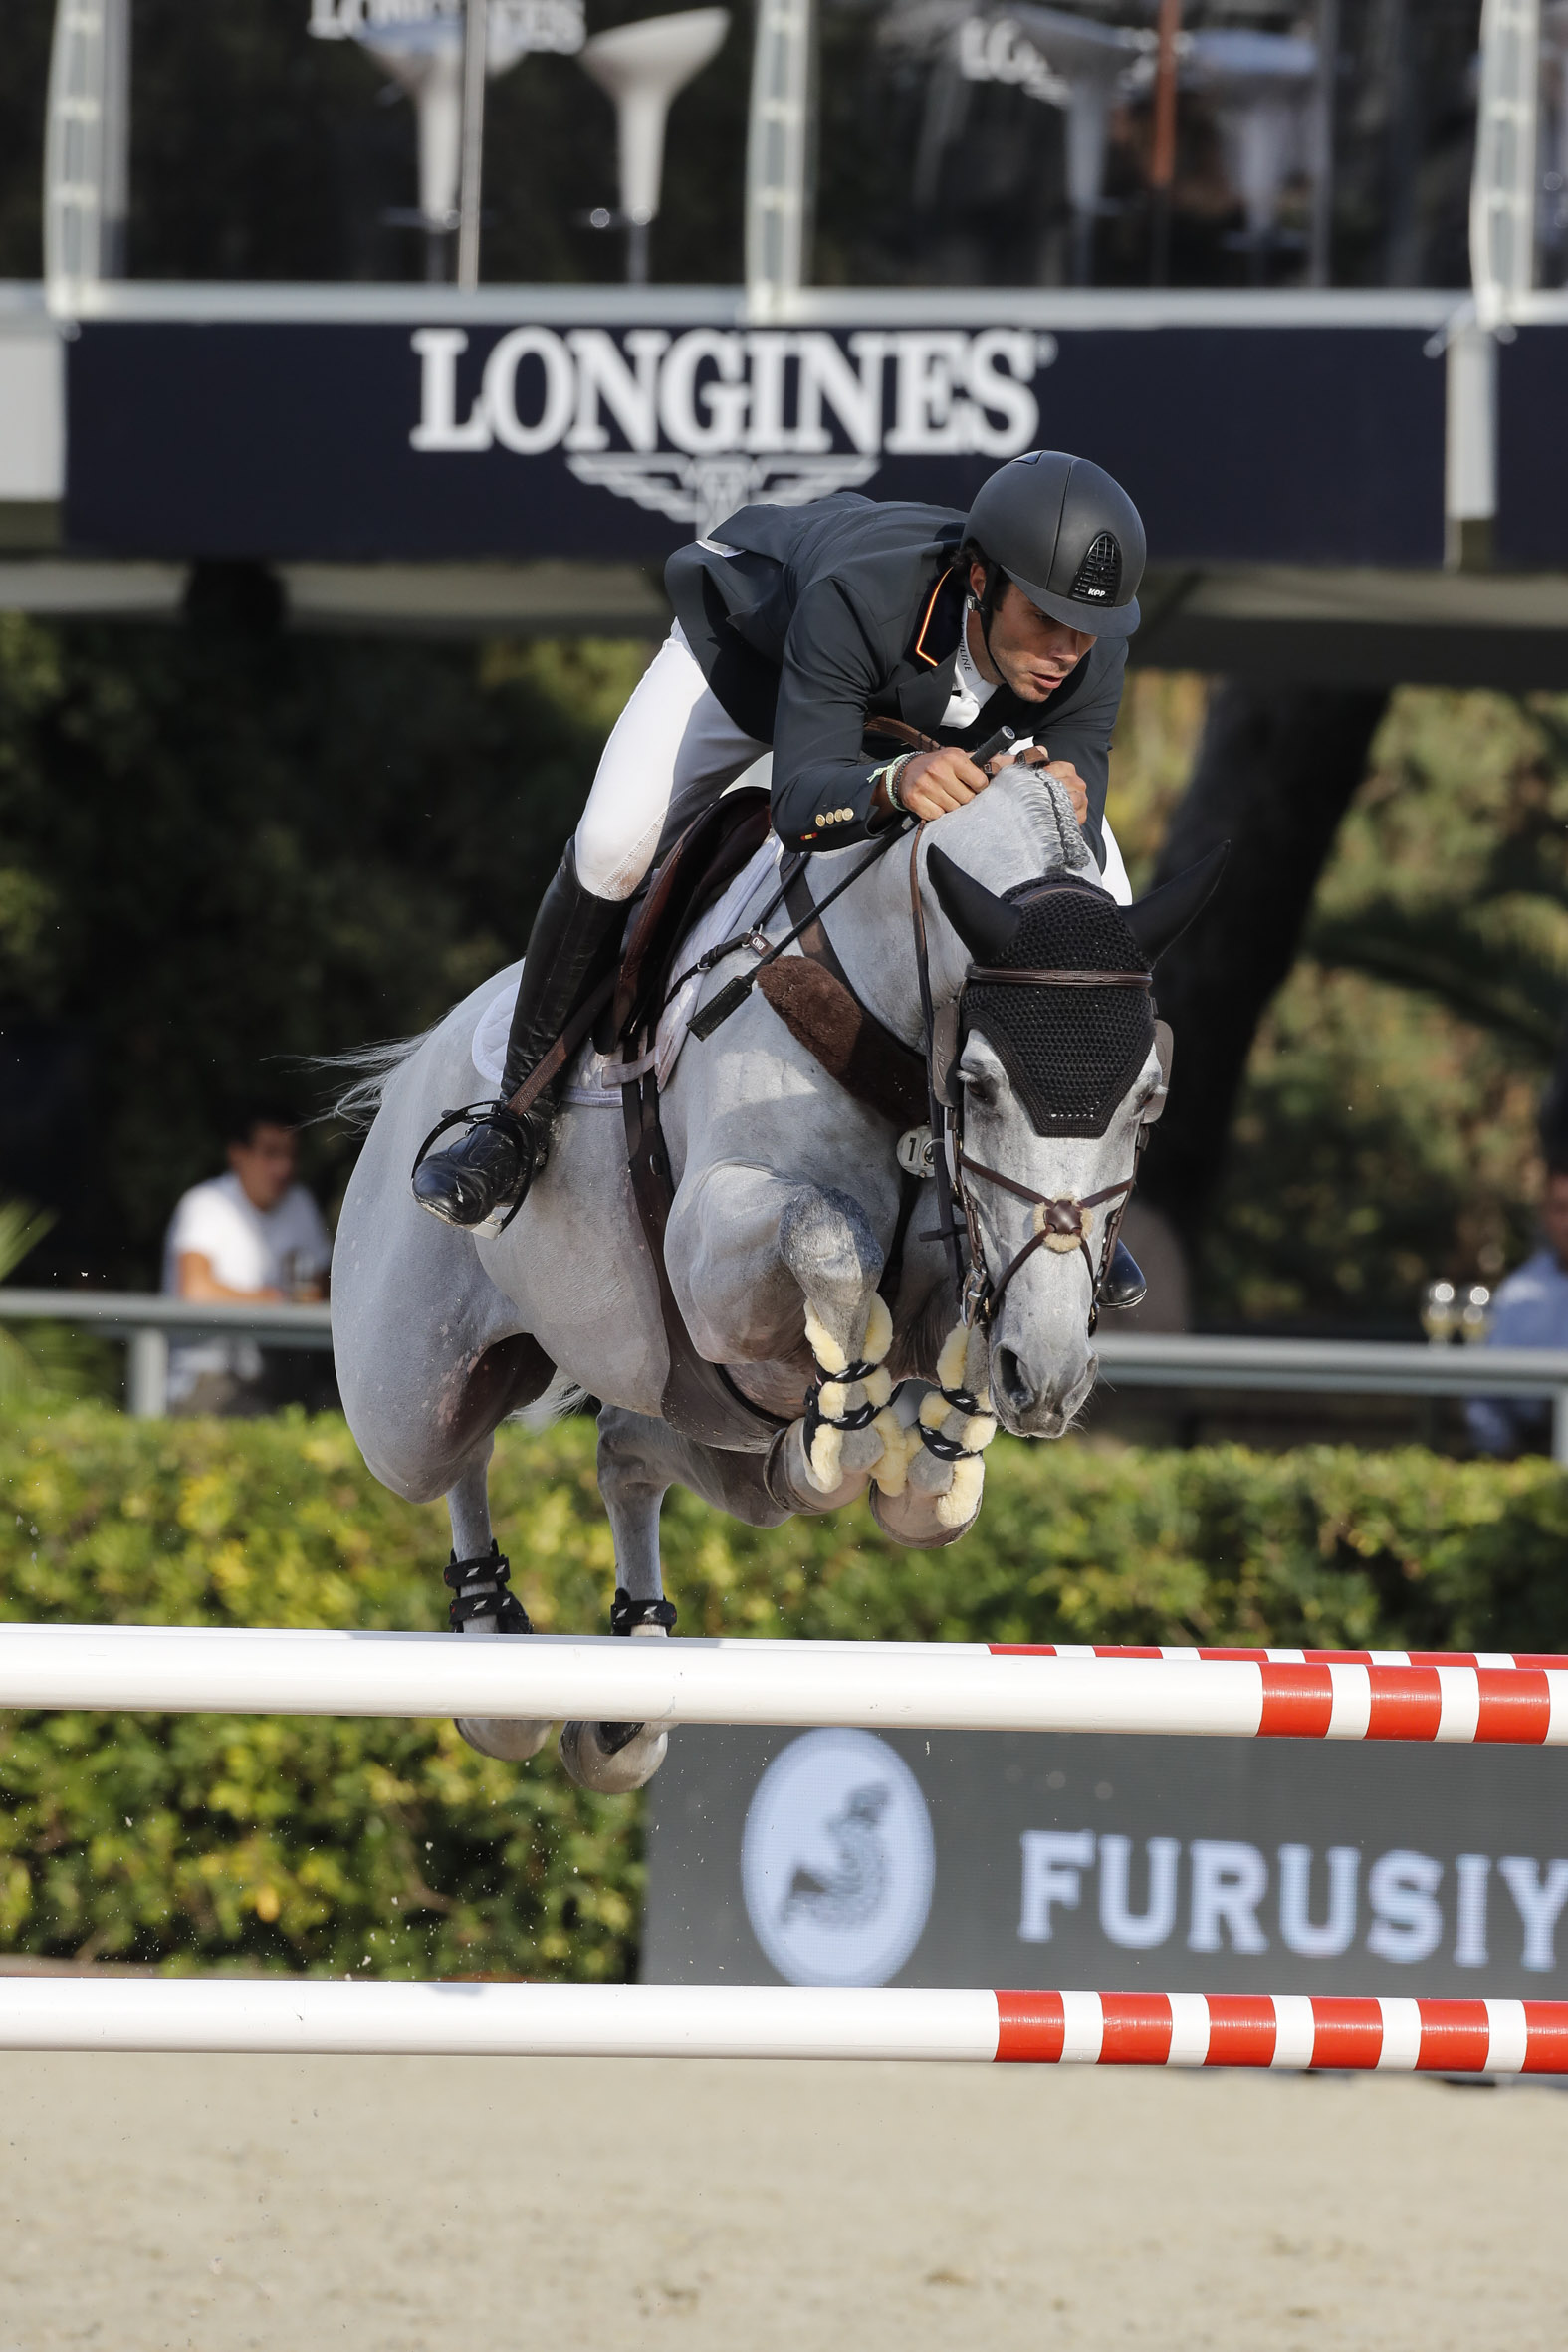 Spain will participate with Álvarez Aznar, Arias, Fernández Saro, Menéndez Mieres and Roquet at the Longines FEI Nations Cup Jumping Final